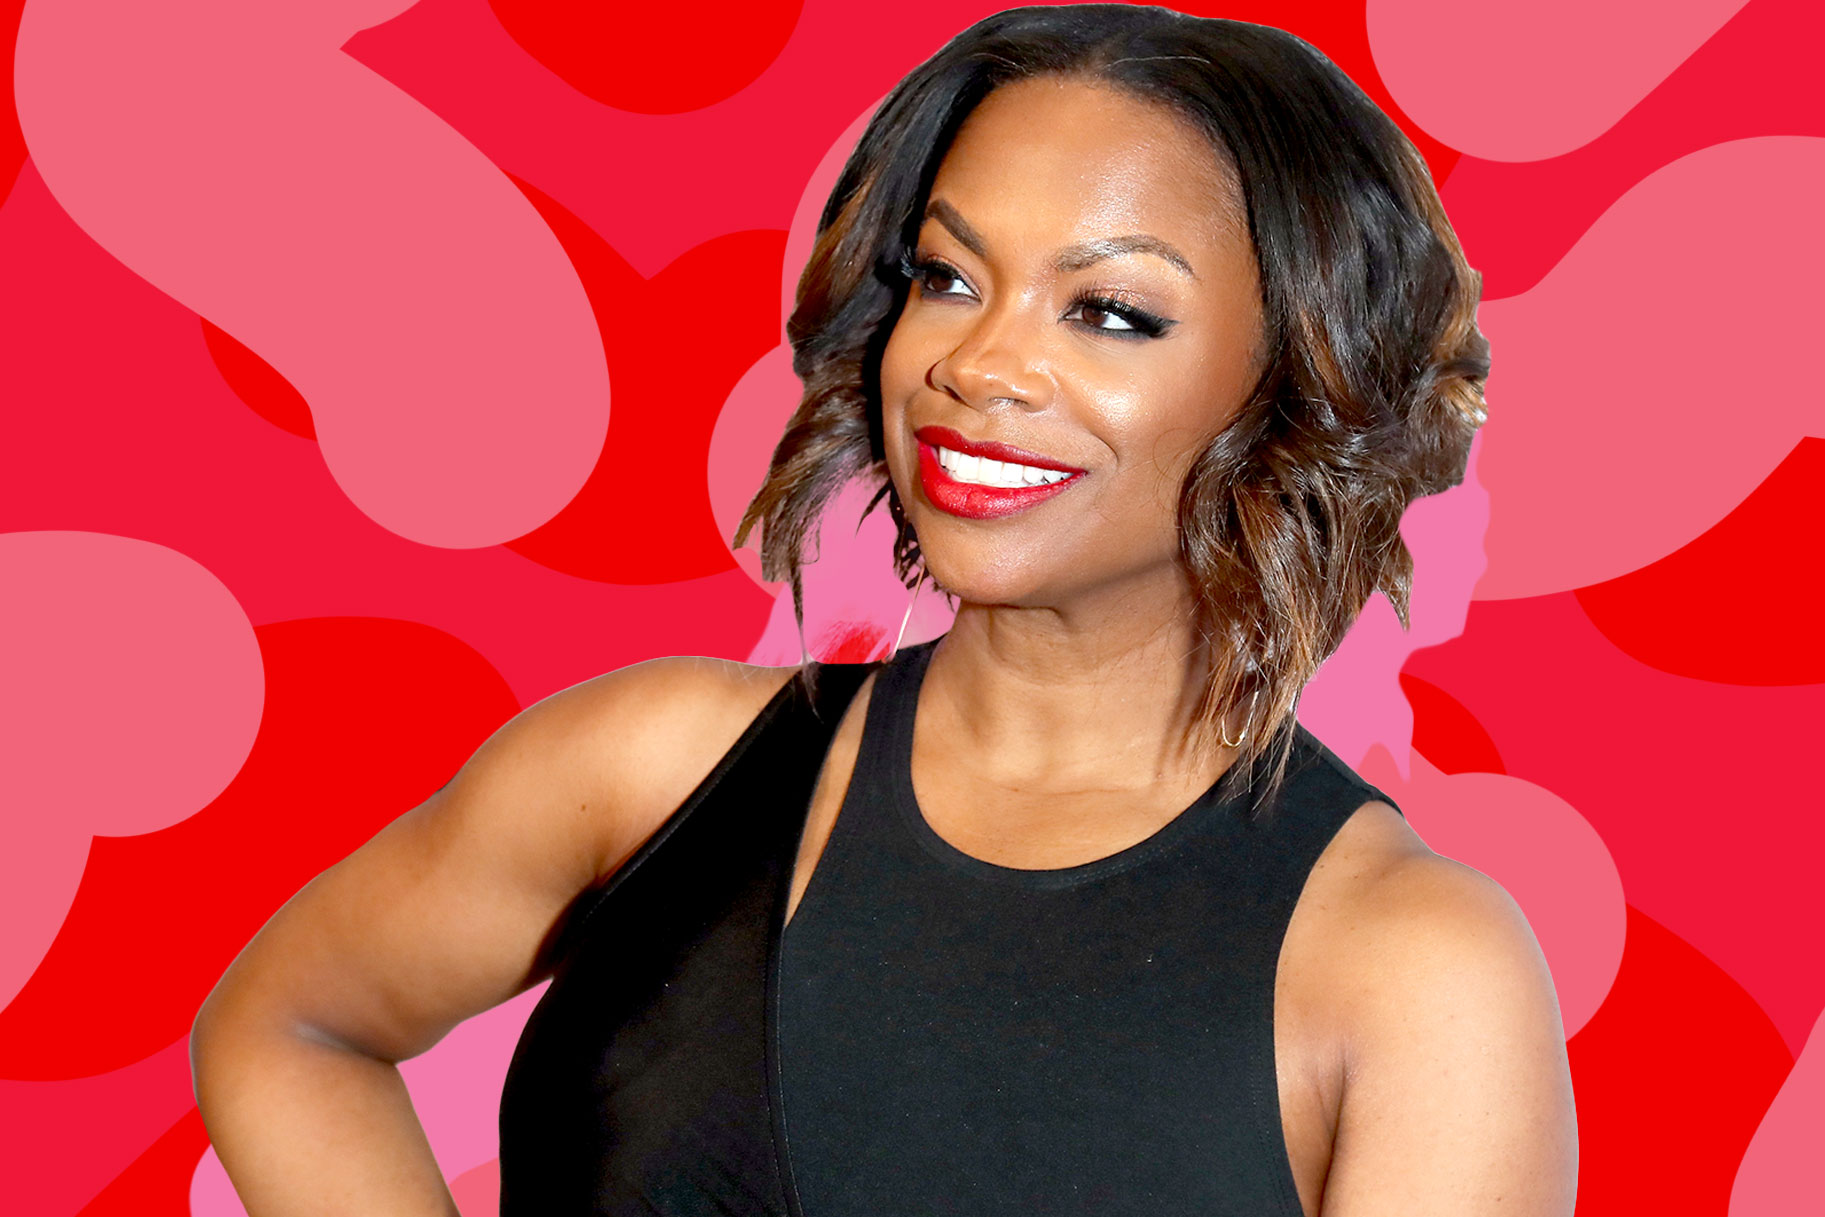 kandi-burruss-throwback-pics-with-her-graduation-surprise-fans-due-to-her-looks